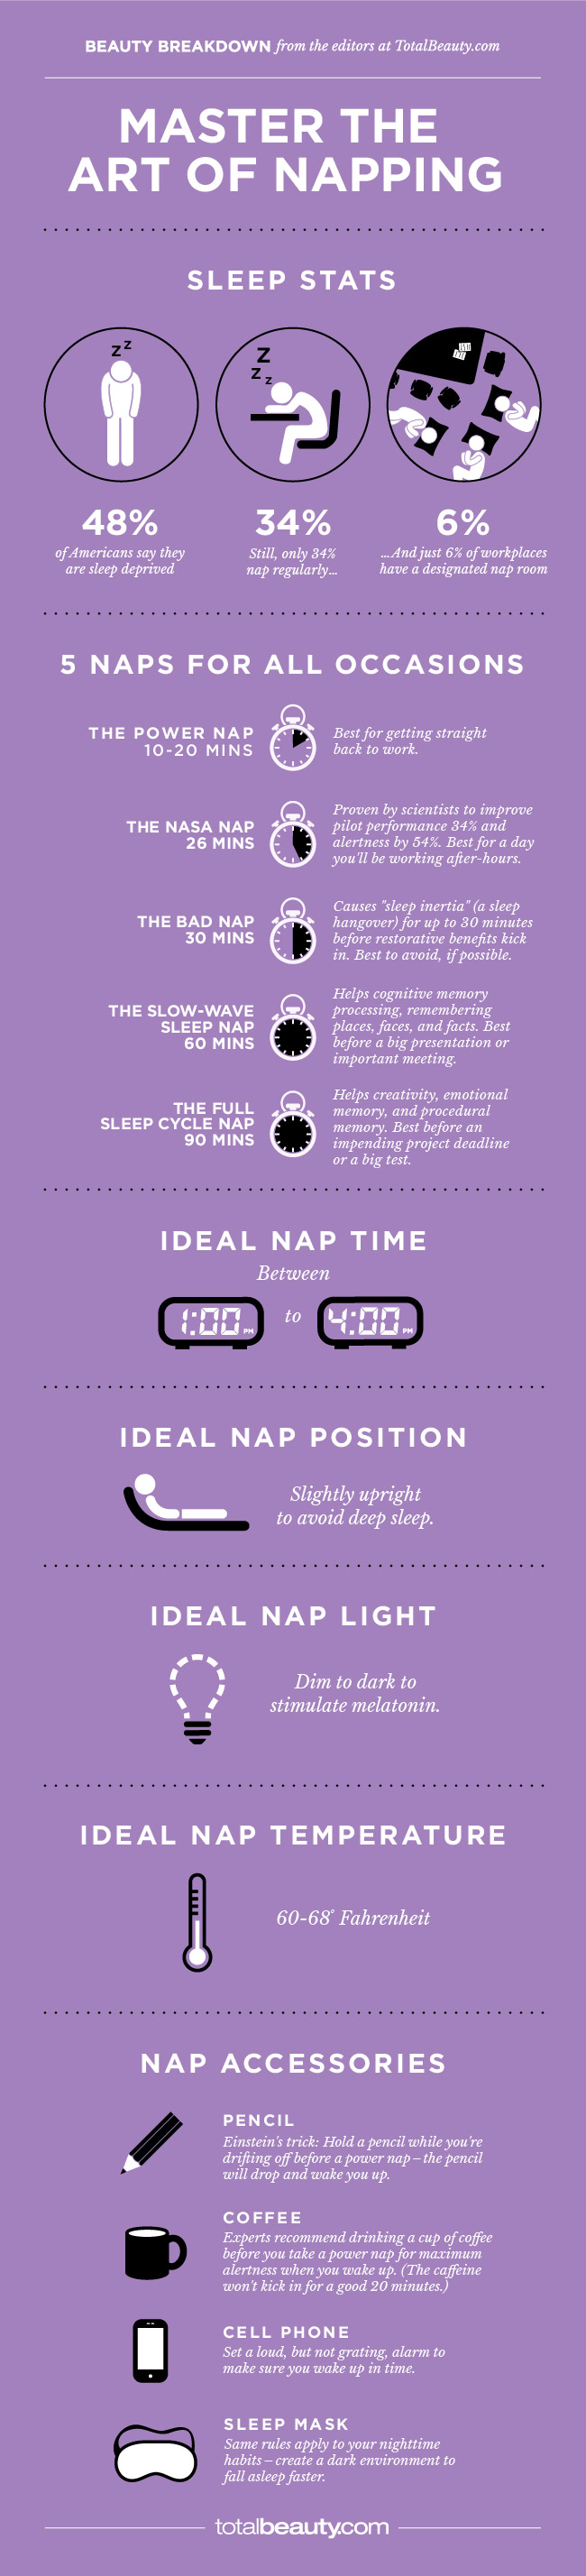 the_art_of_napping_infographic